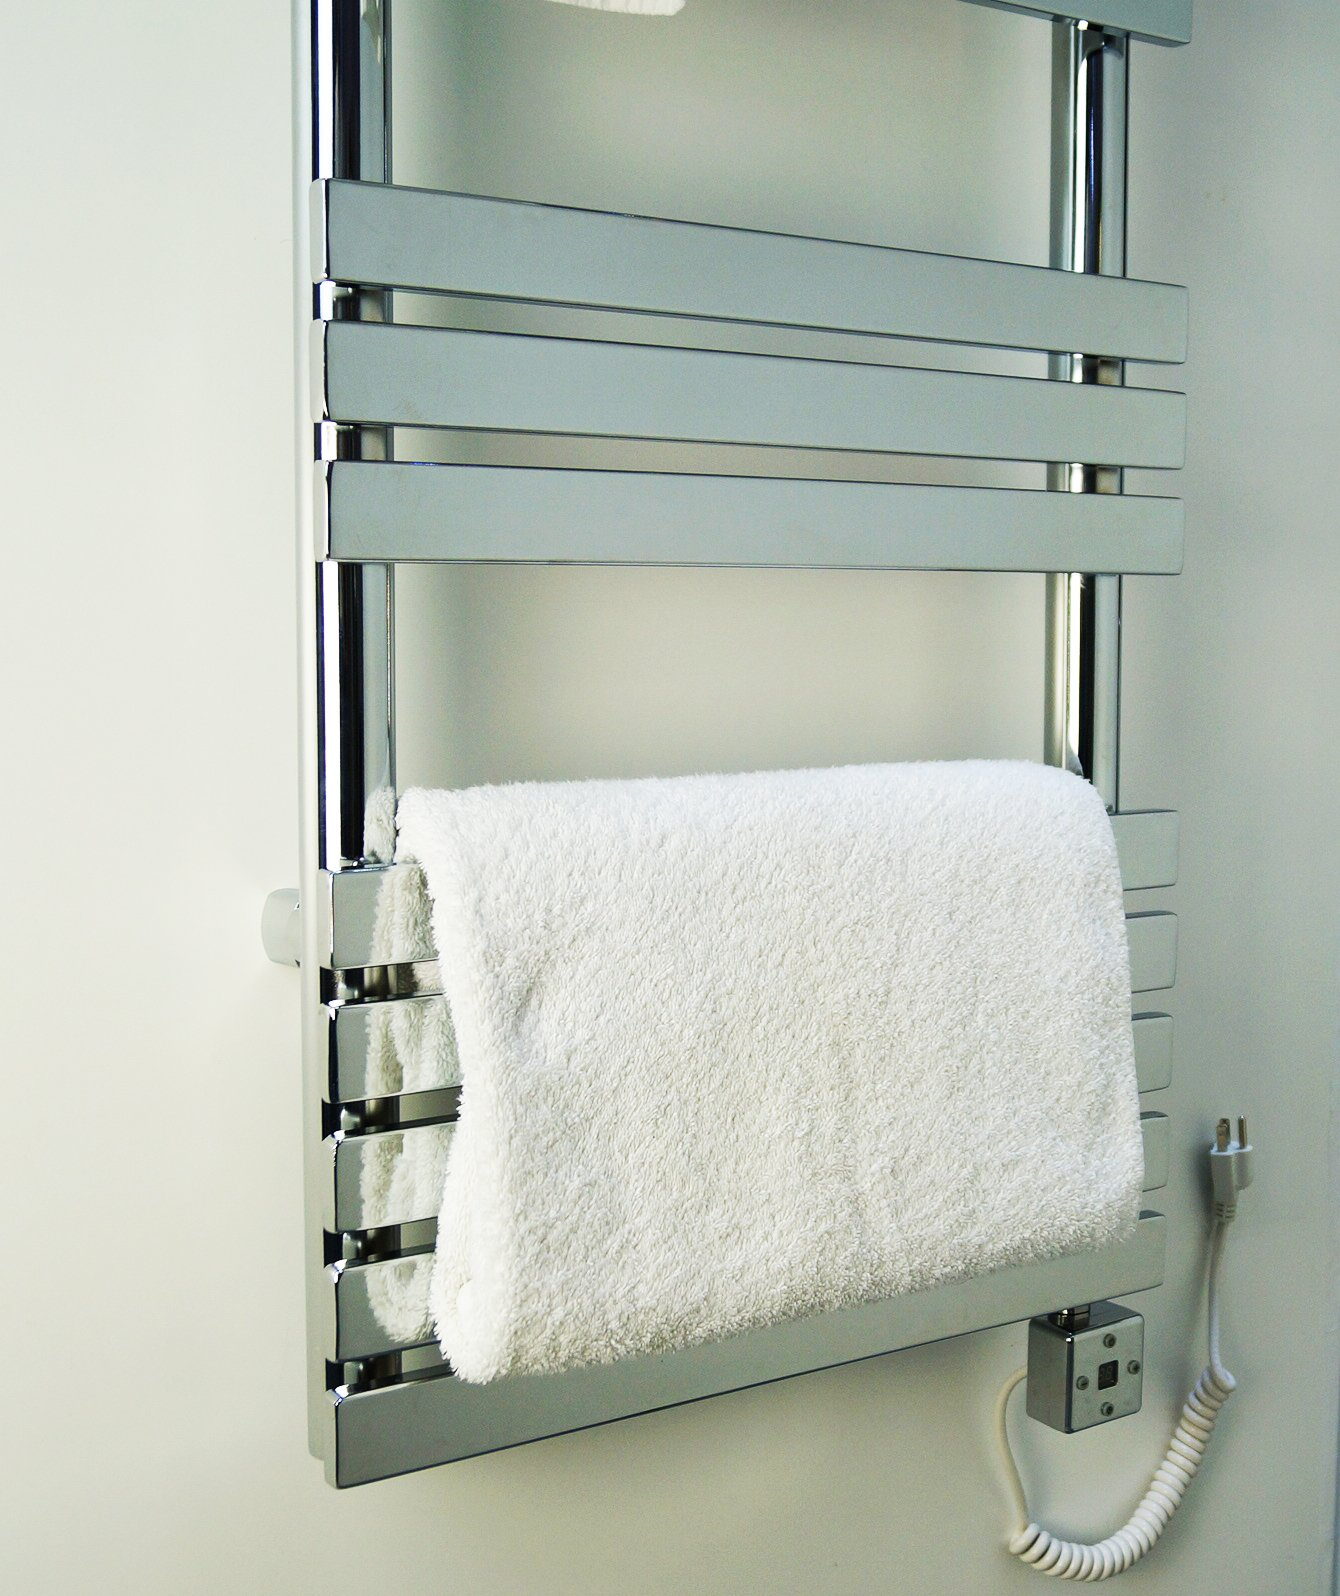 PROFESSIONAL ELECTRIC TOWEL WARMER - 500 WATTS + ROOM HEATER + TIMER PROGRAMMER AND THERMOSTAT. BATHROOM AND KITCHEN. electric towel heater. hanging towel rail. LOW CARBON STEEL. 15 TUBES.